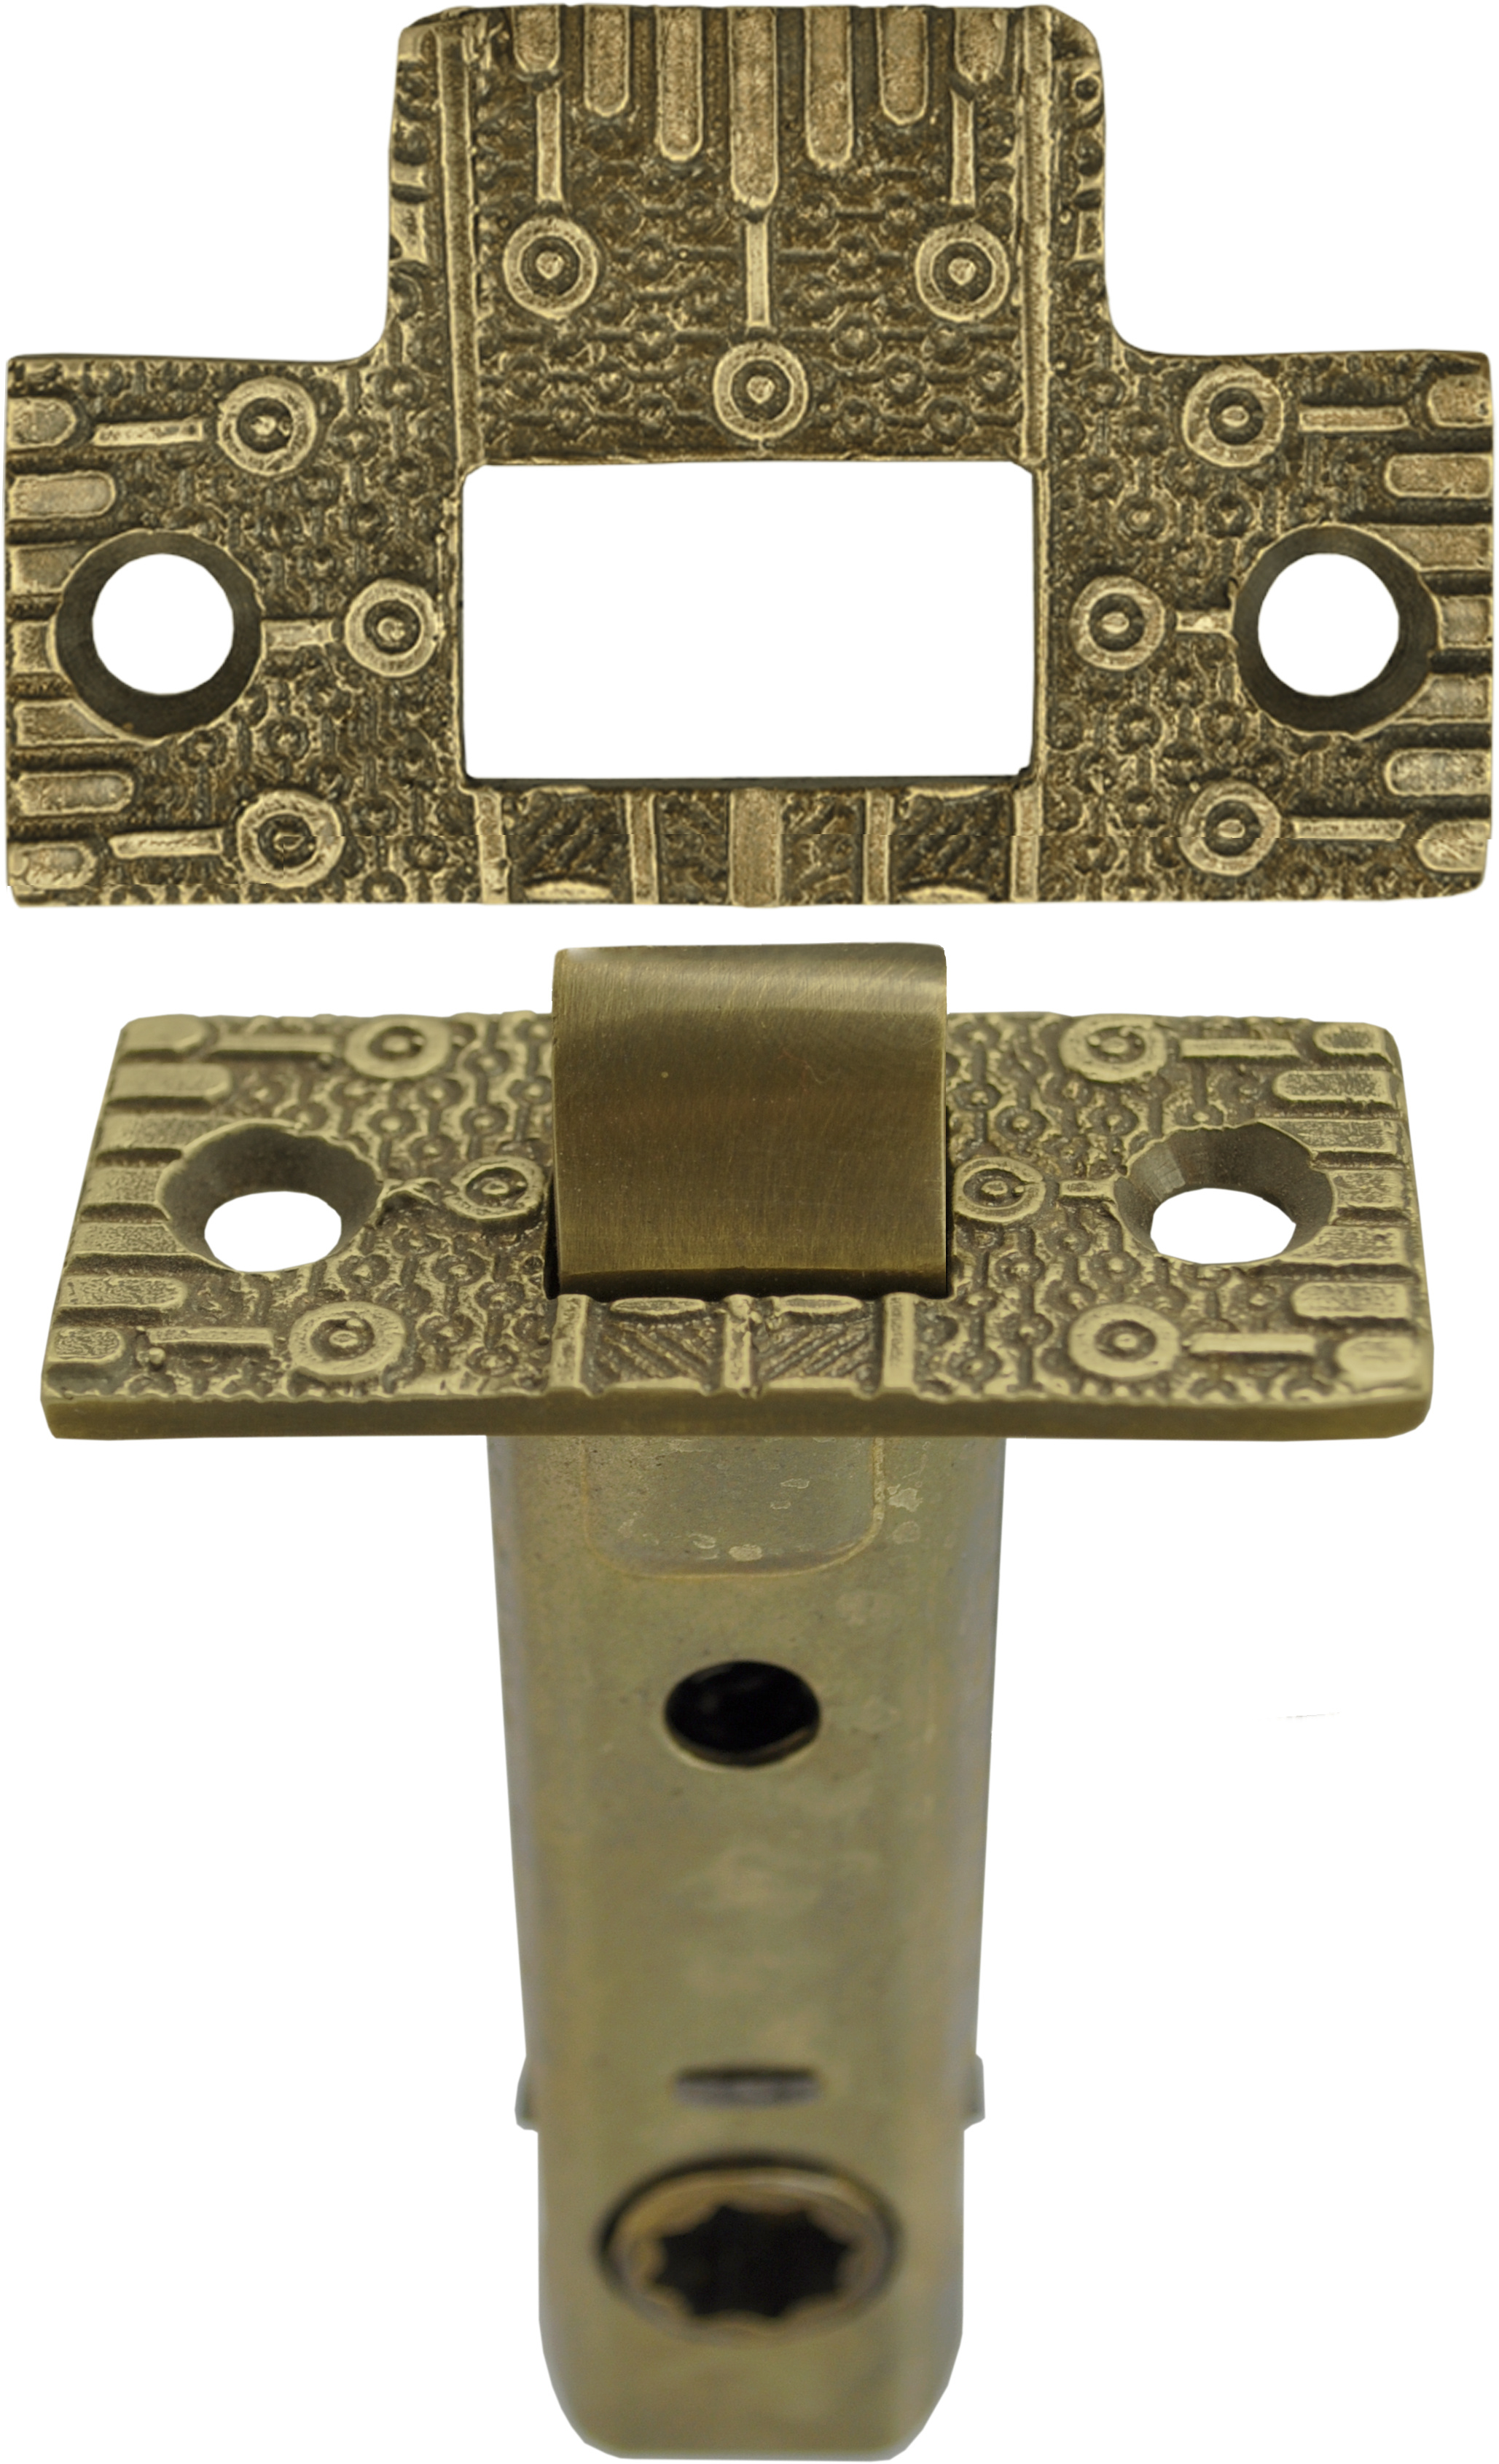 Backset, Vintage Pocket Door Locks